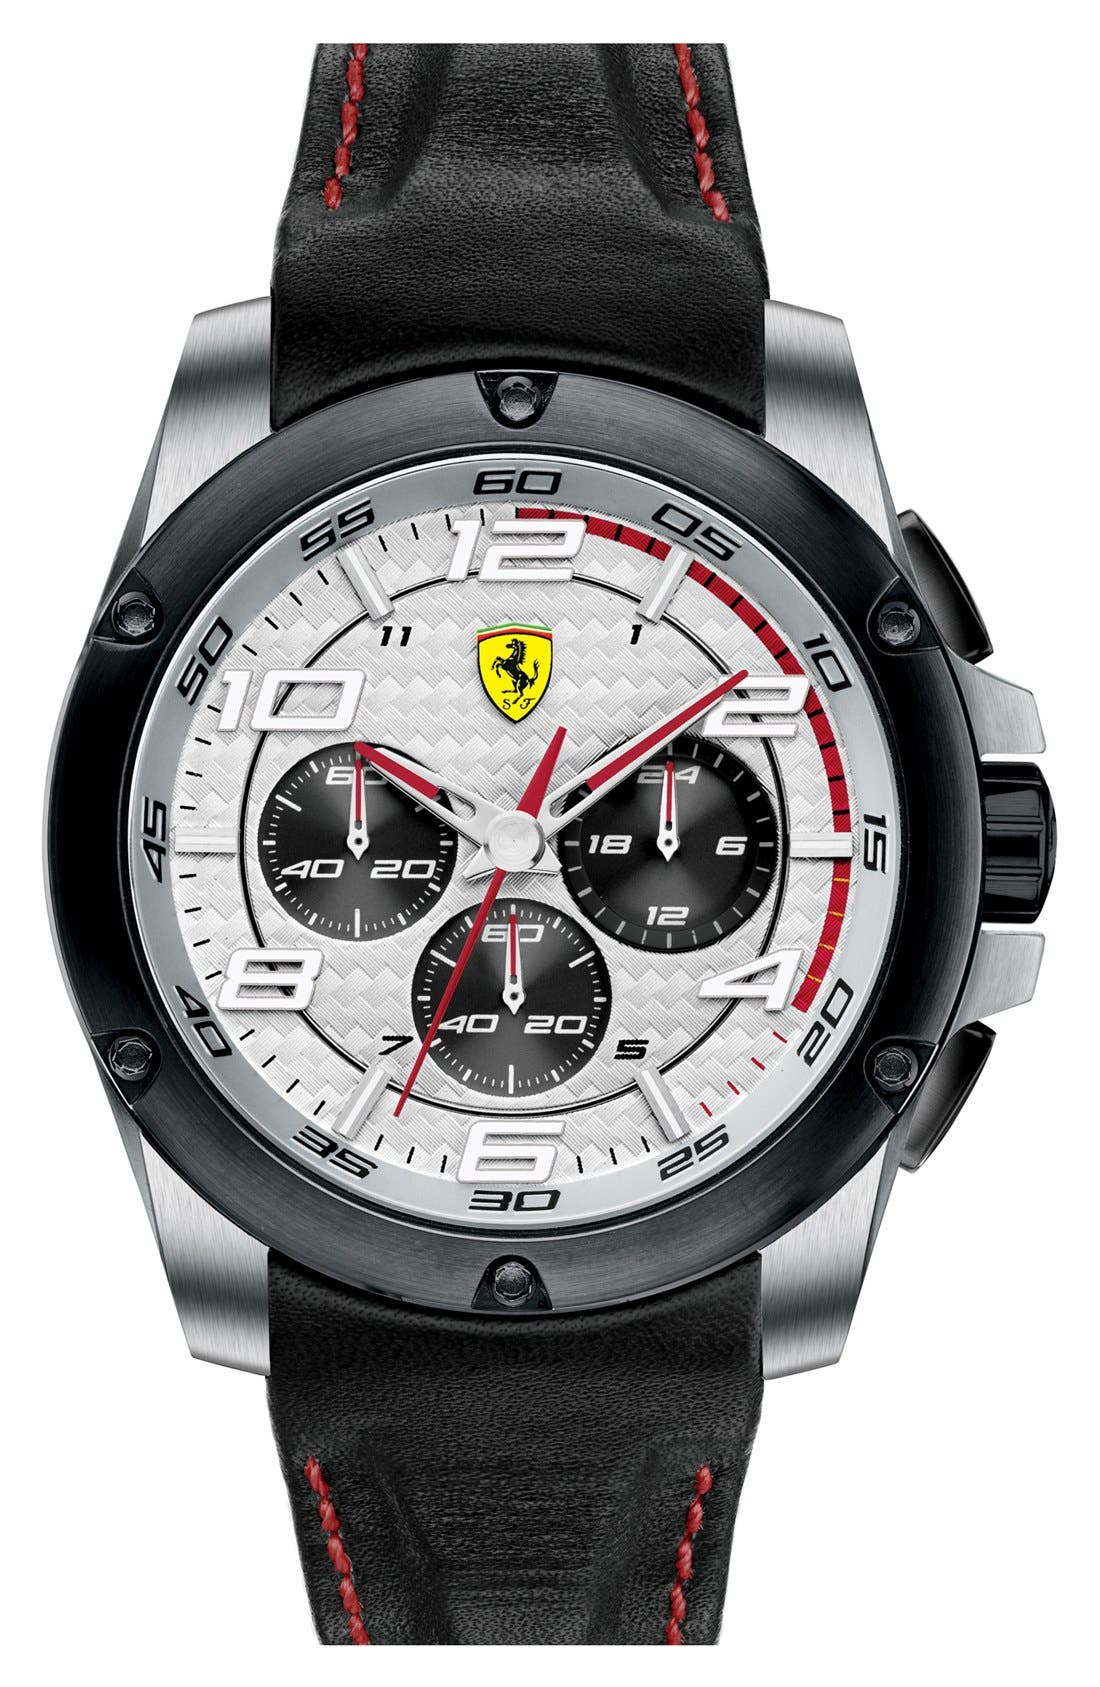 Alternate Image 1 Selected - Scuderia Ferrari 'Paddock' Chronograph Leather Strap Watch, 46mm